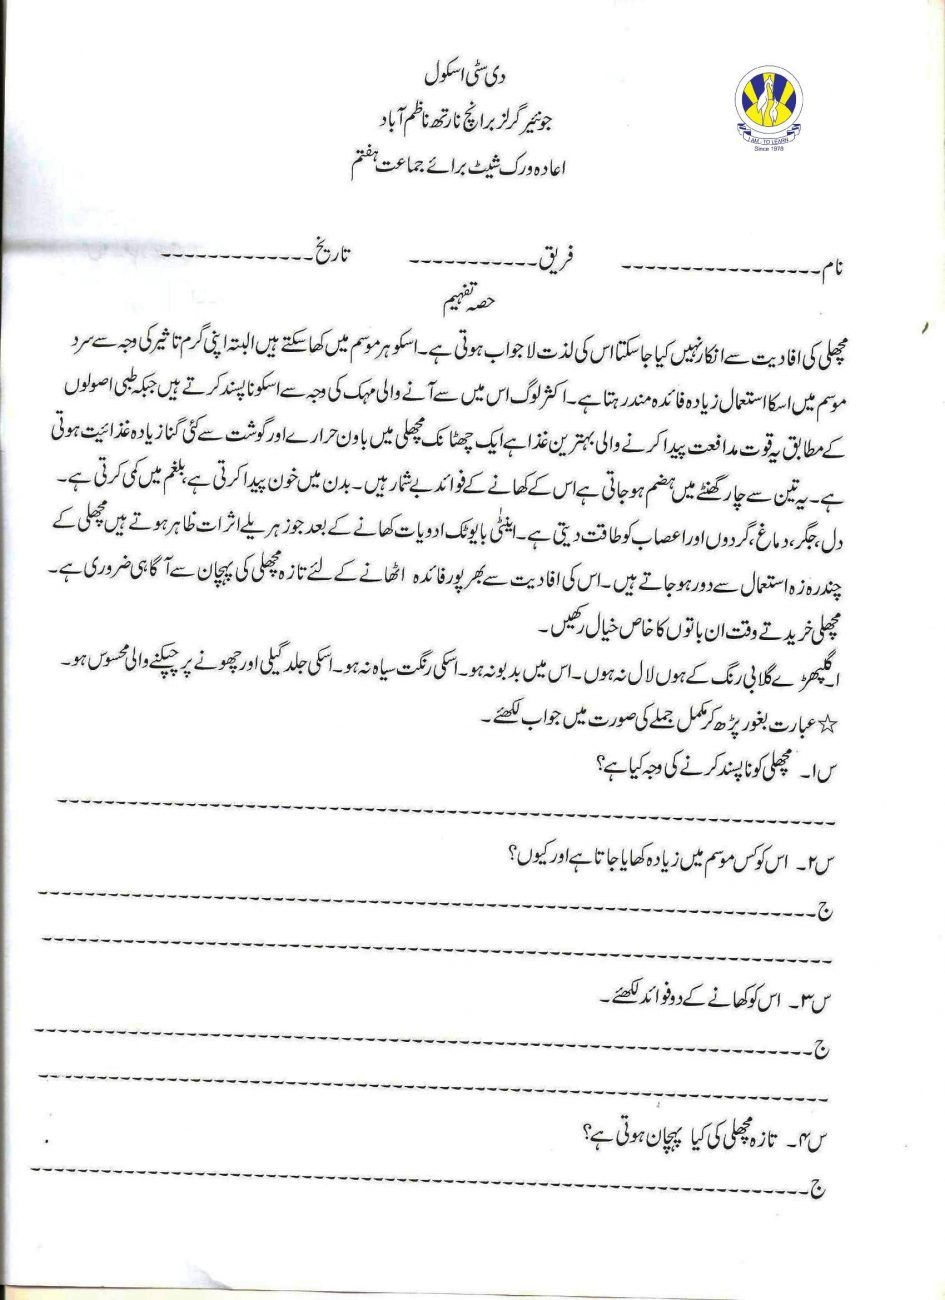 Urdu Tafheem Worksheets For Grade 4 401893 Worksheets Library 2nd Grade Worksheets Comprehension Worksheets Reading Comprehension Worksheets